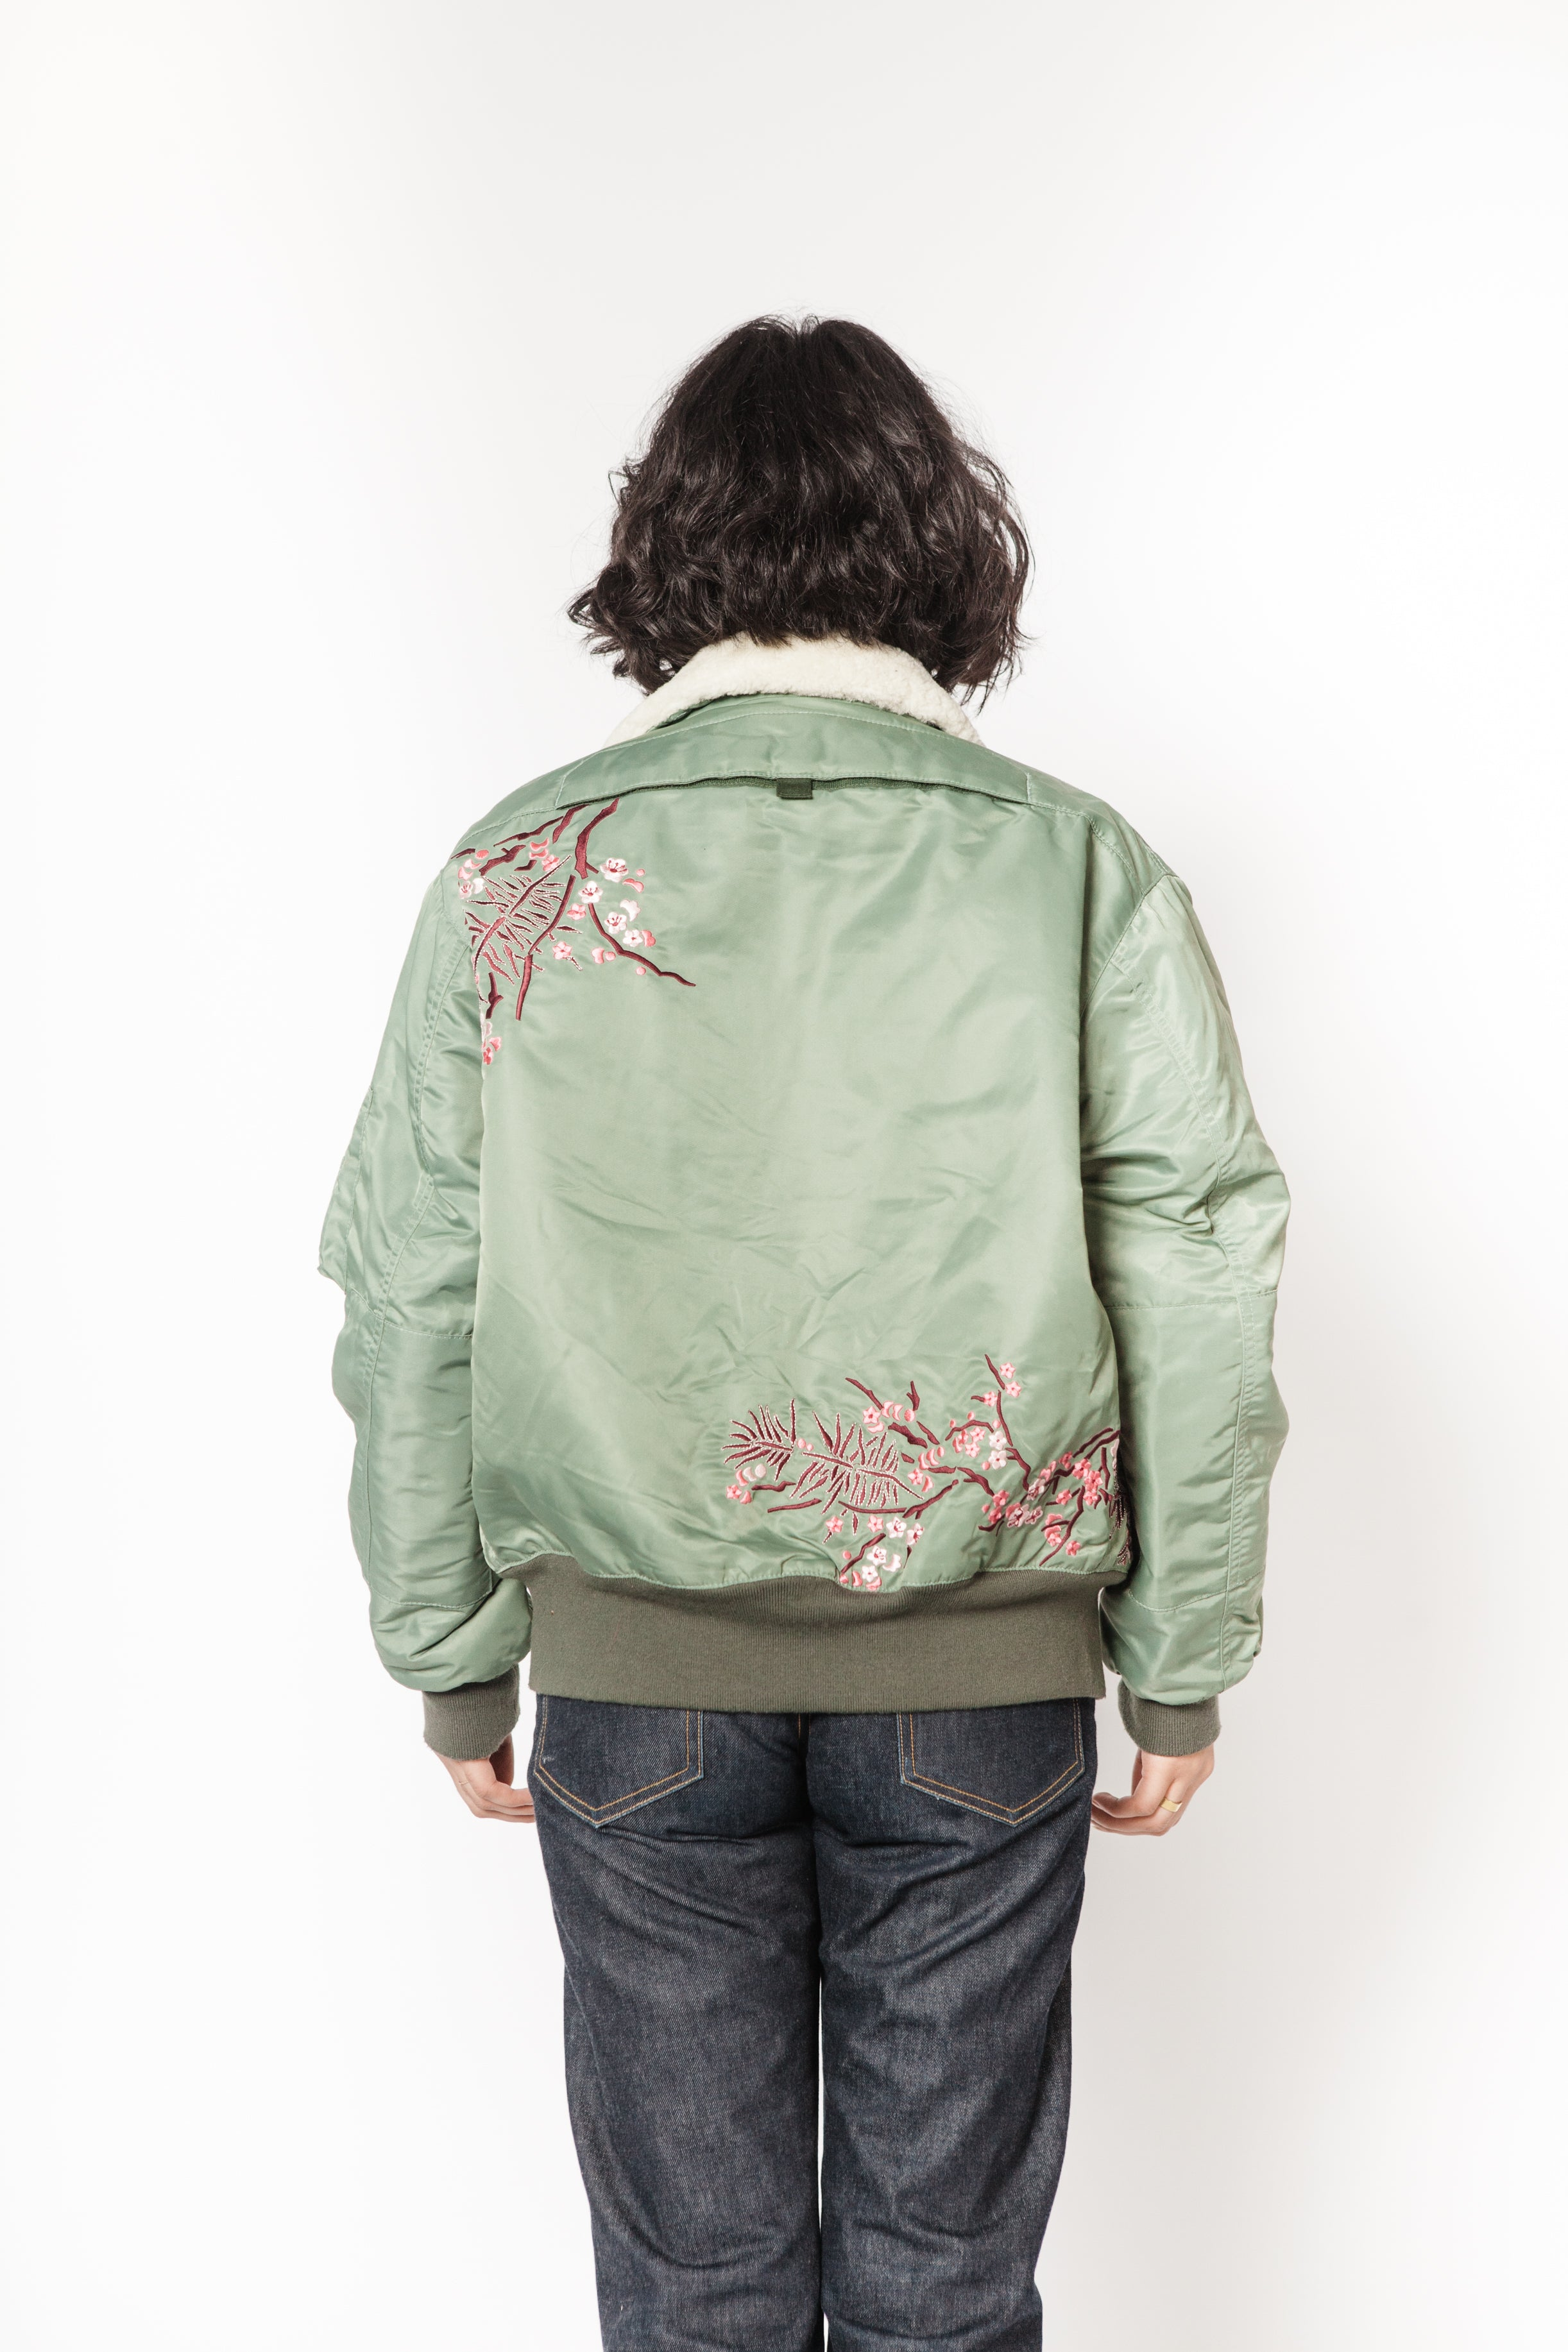 La Bete green bomber with tiger